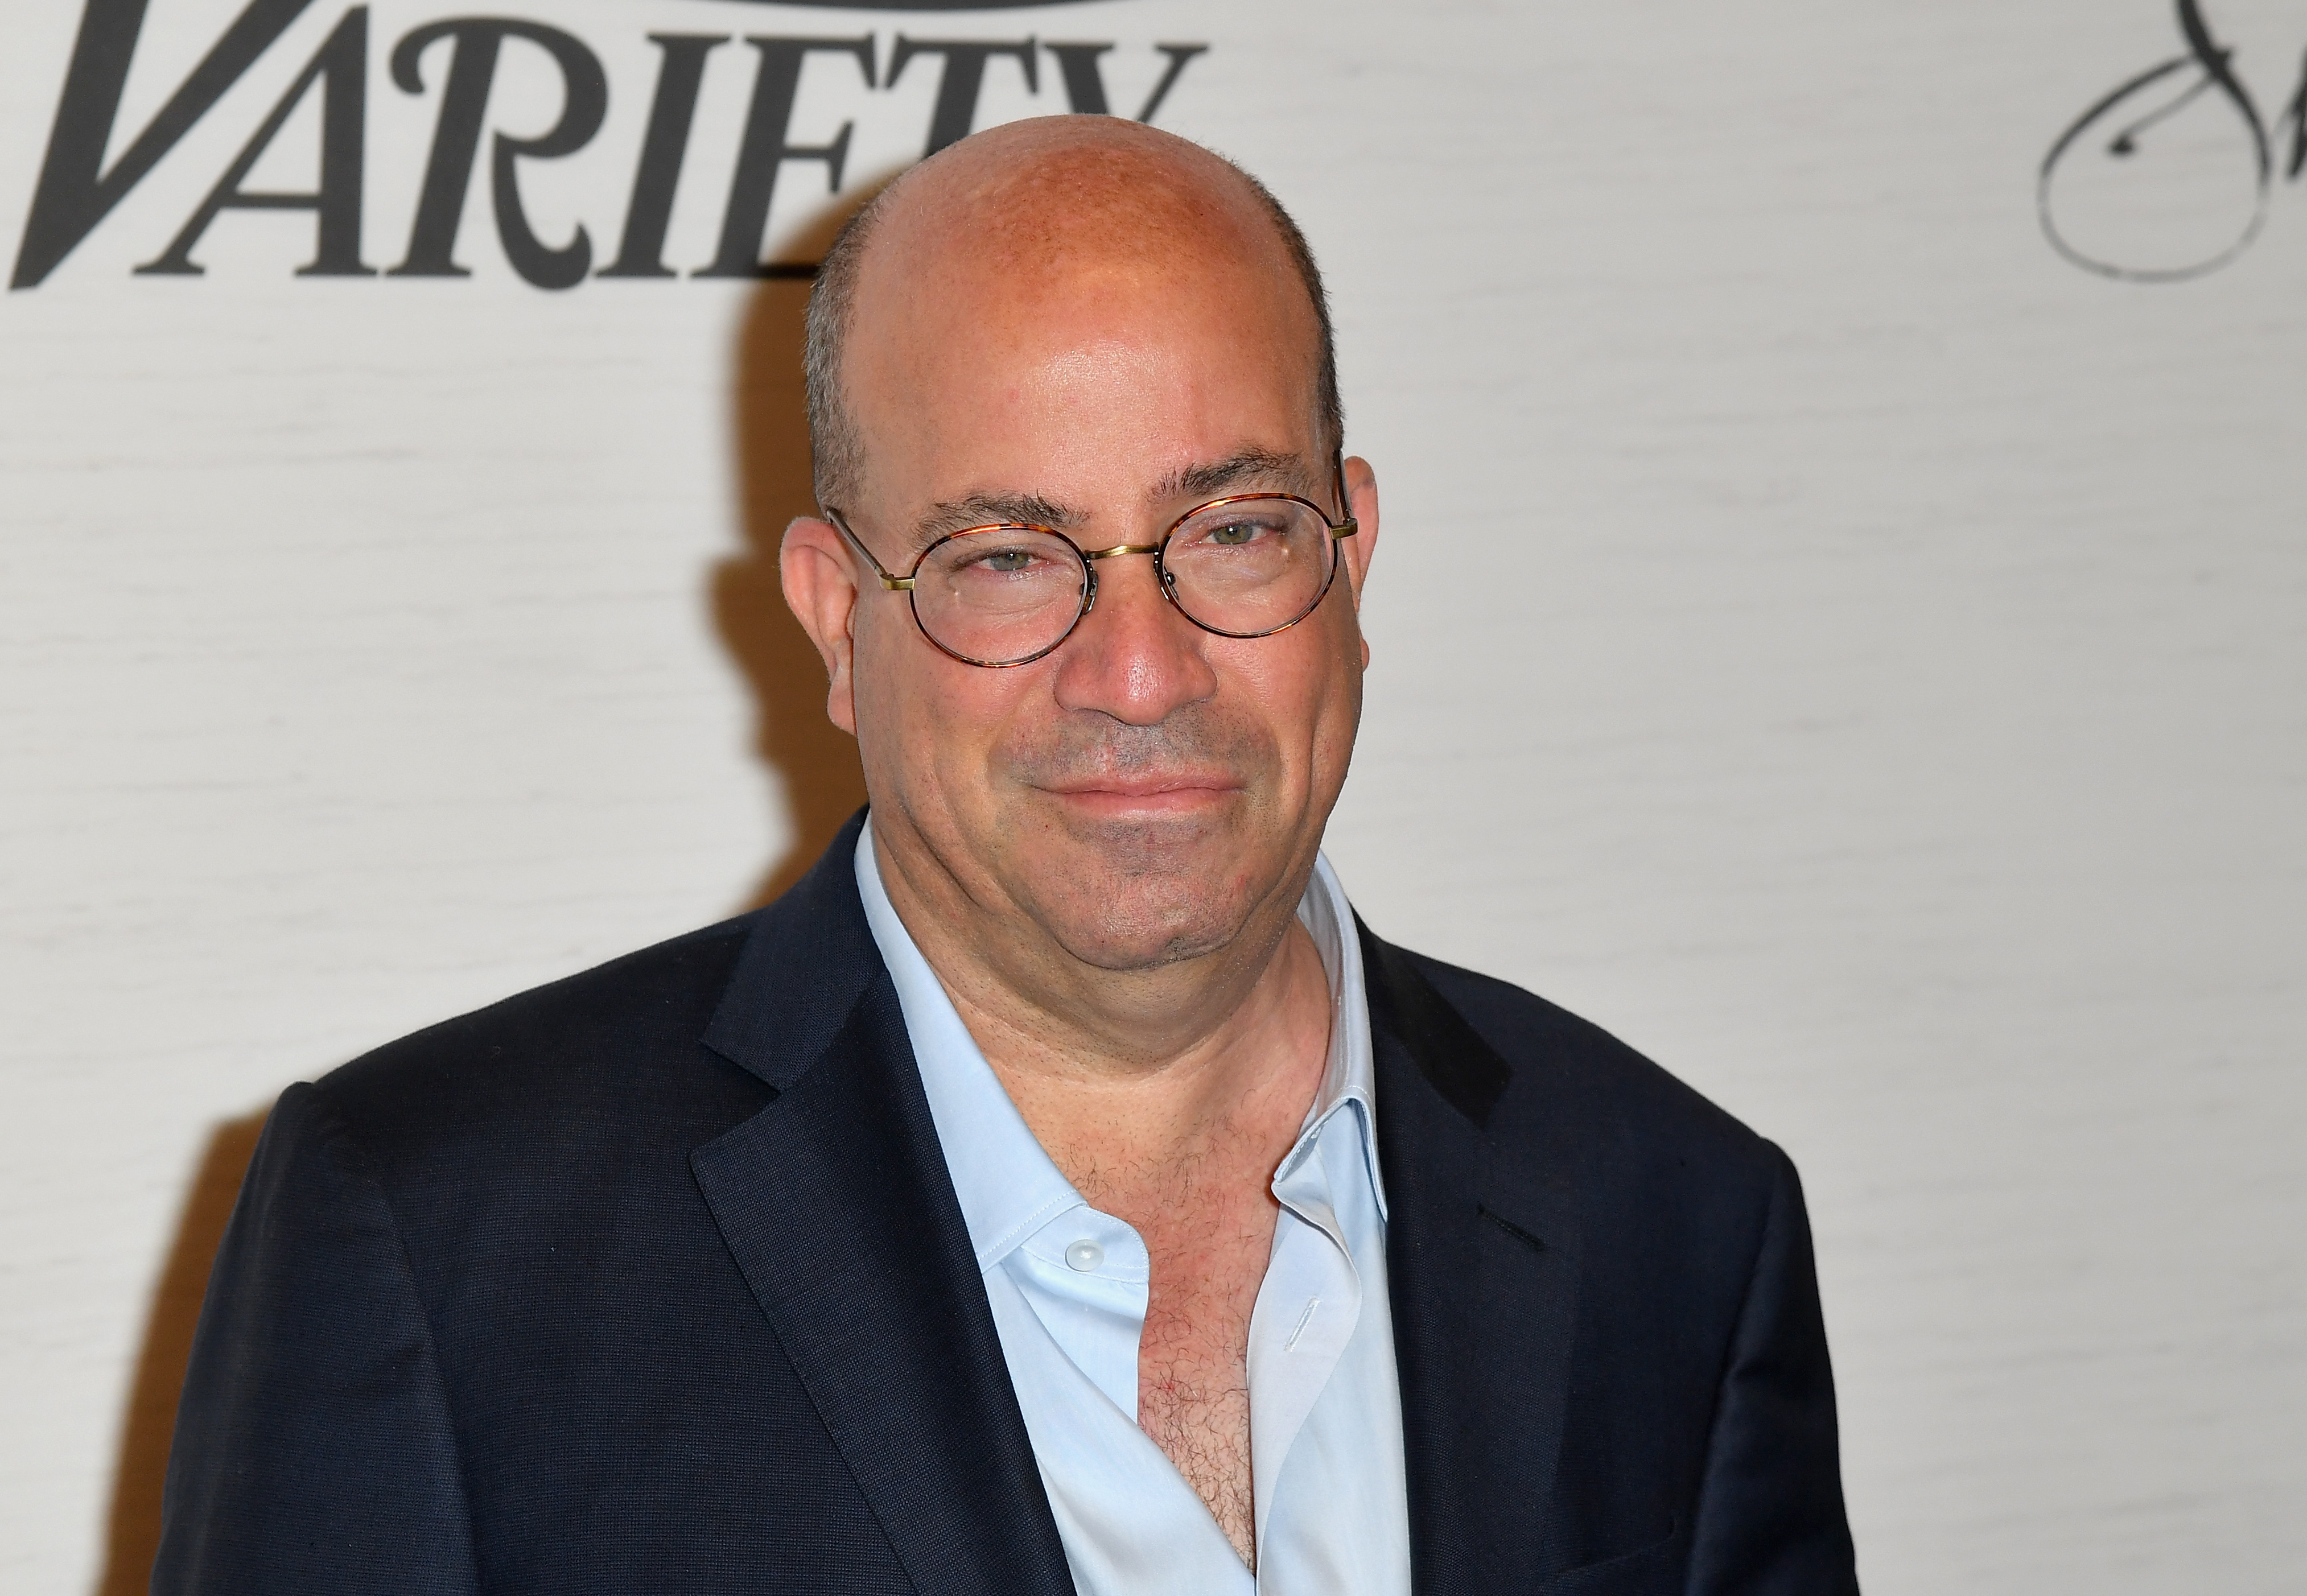 President of CNN Worldwide Jeff Zucker attends Variety's Power Of Women: New York presented by Lifetime, at Cipriani Midtown on April 5, 2019 in New York City. (Photo by Angela Weiss / AFP) (Photo credit ANGELA WEISS/AFP/Getty Images)